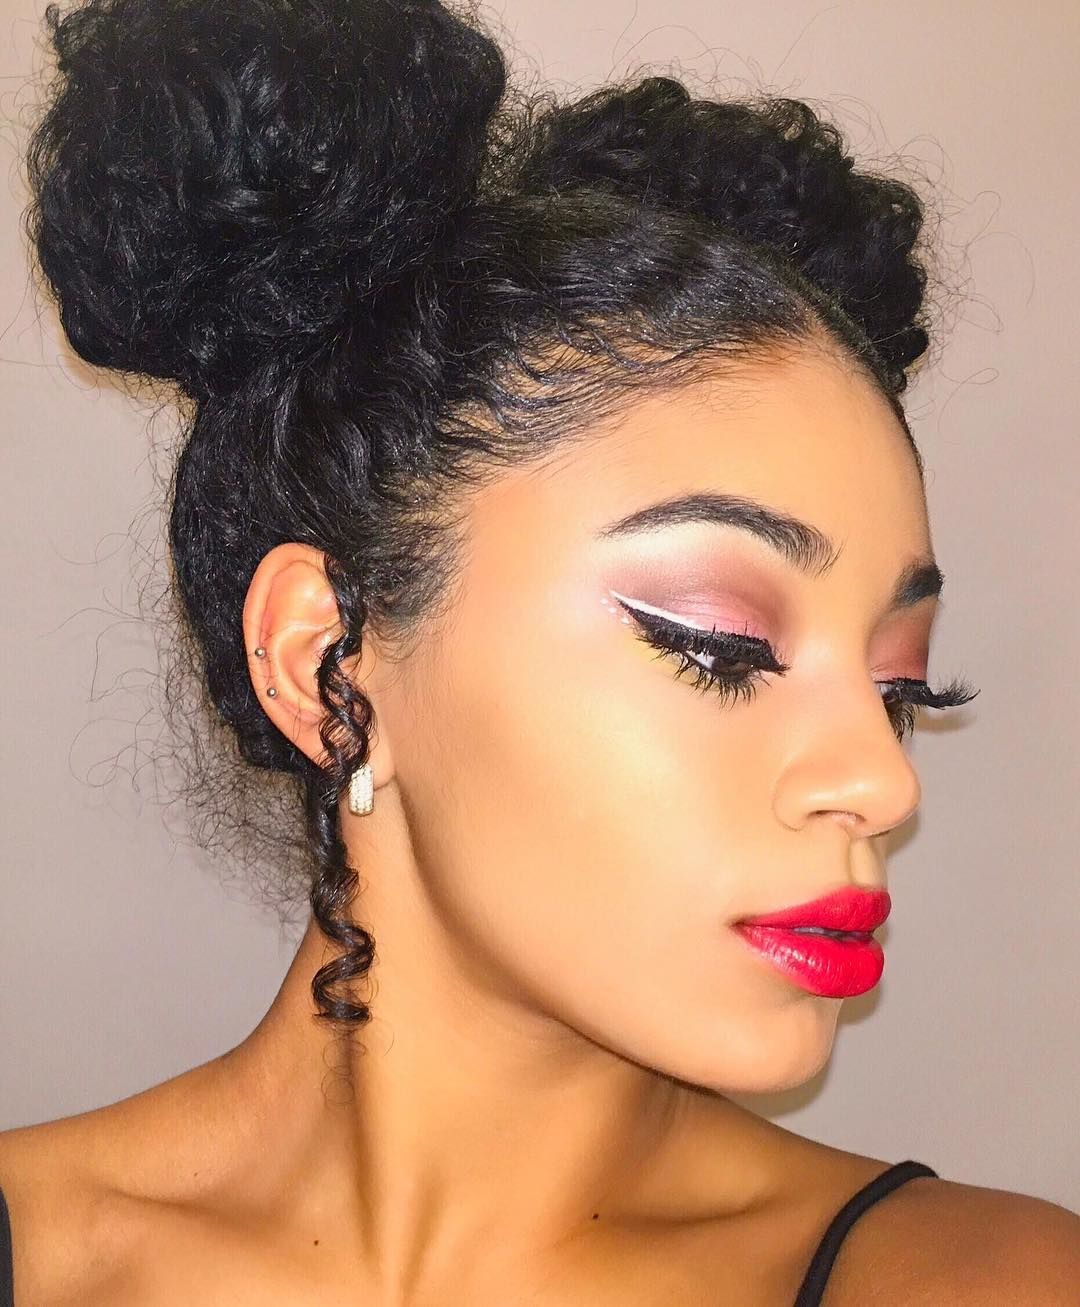 Charming Make Up And Cool Two Buns Jasmeannnn Repost Redlips Bun Twobuns Makeup Haircolo Curly Hair Styles Curly Hair Styles Naturally Lace Frontal Wig